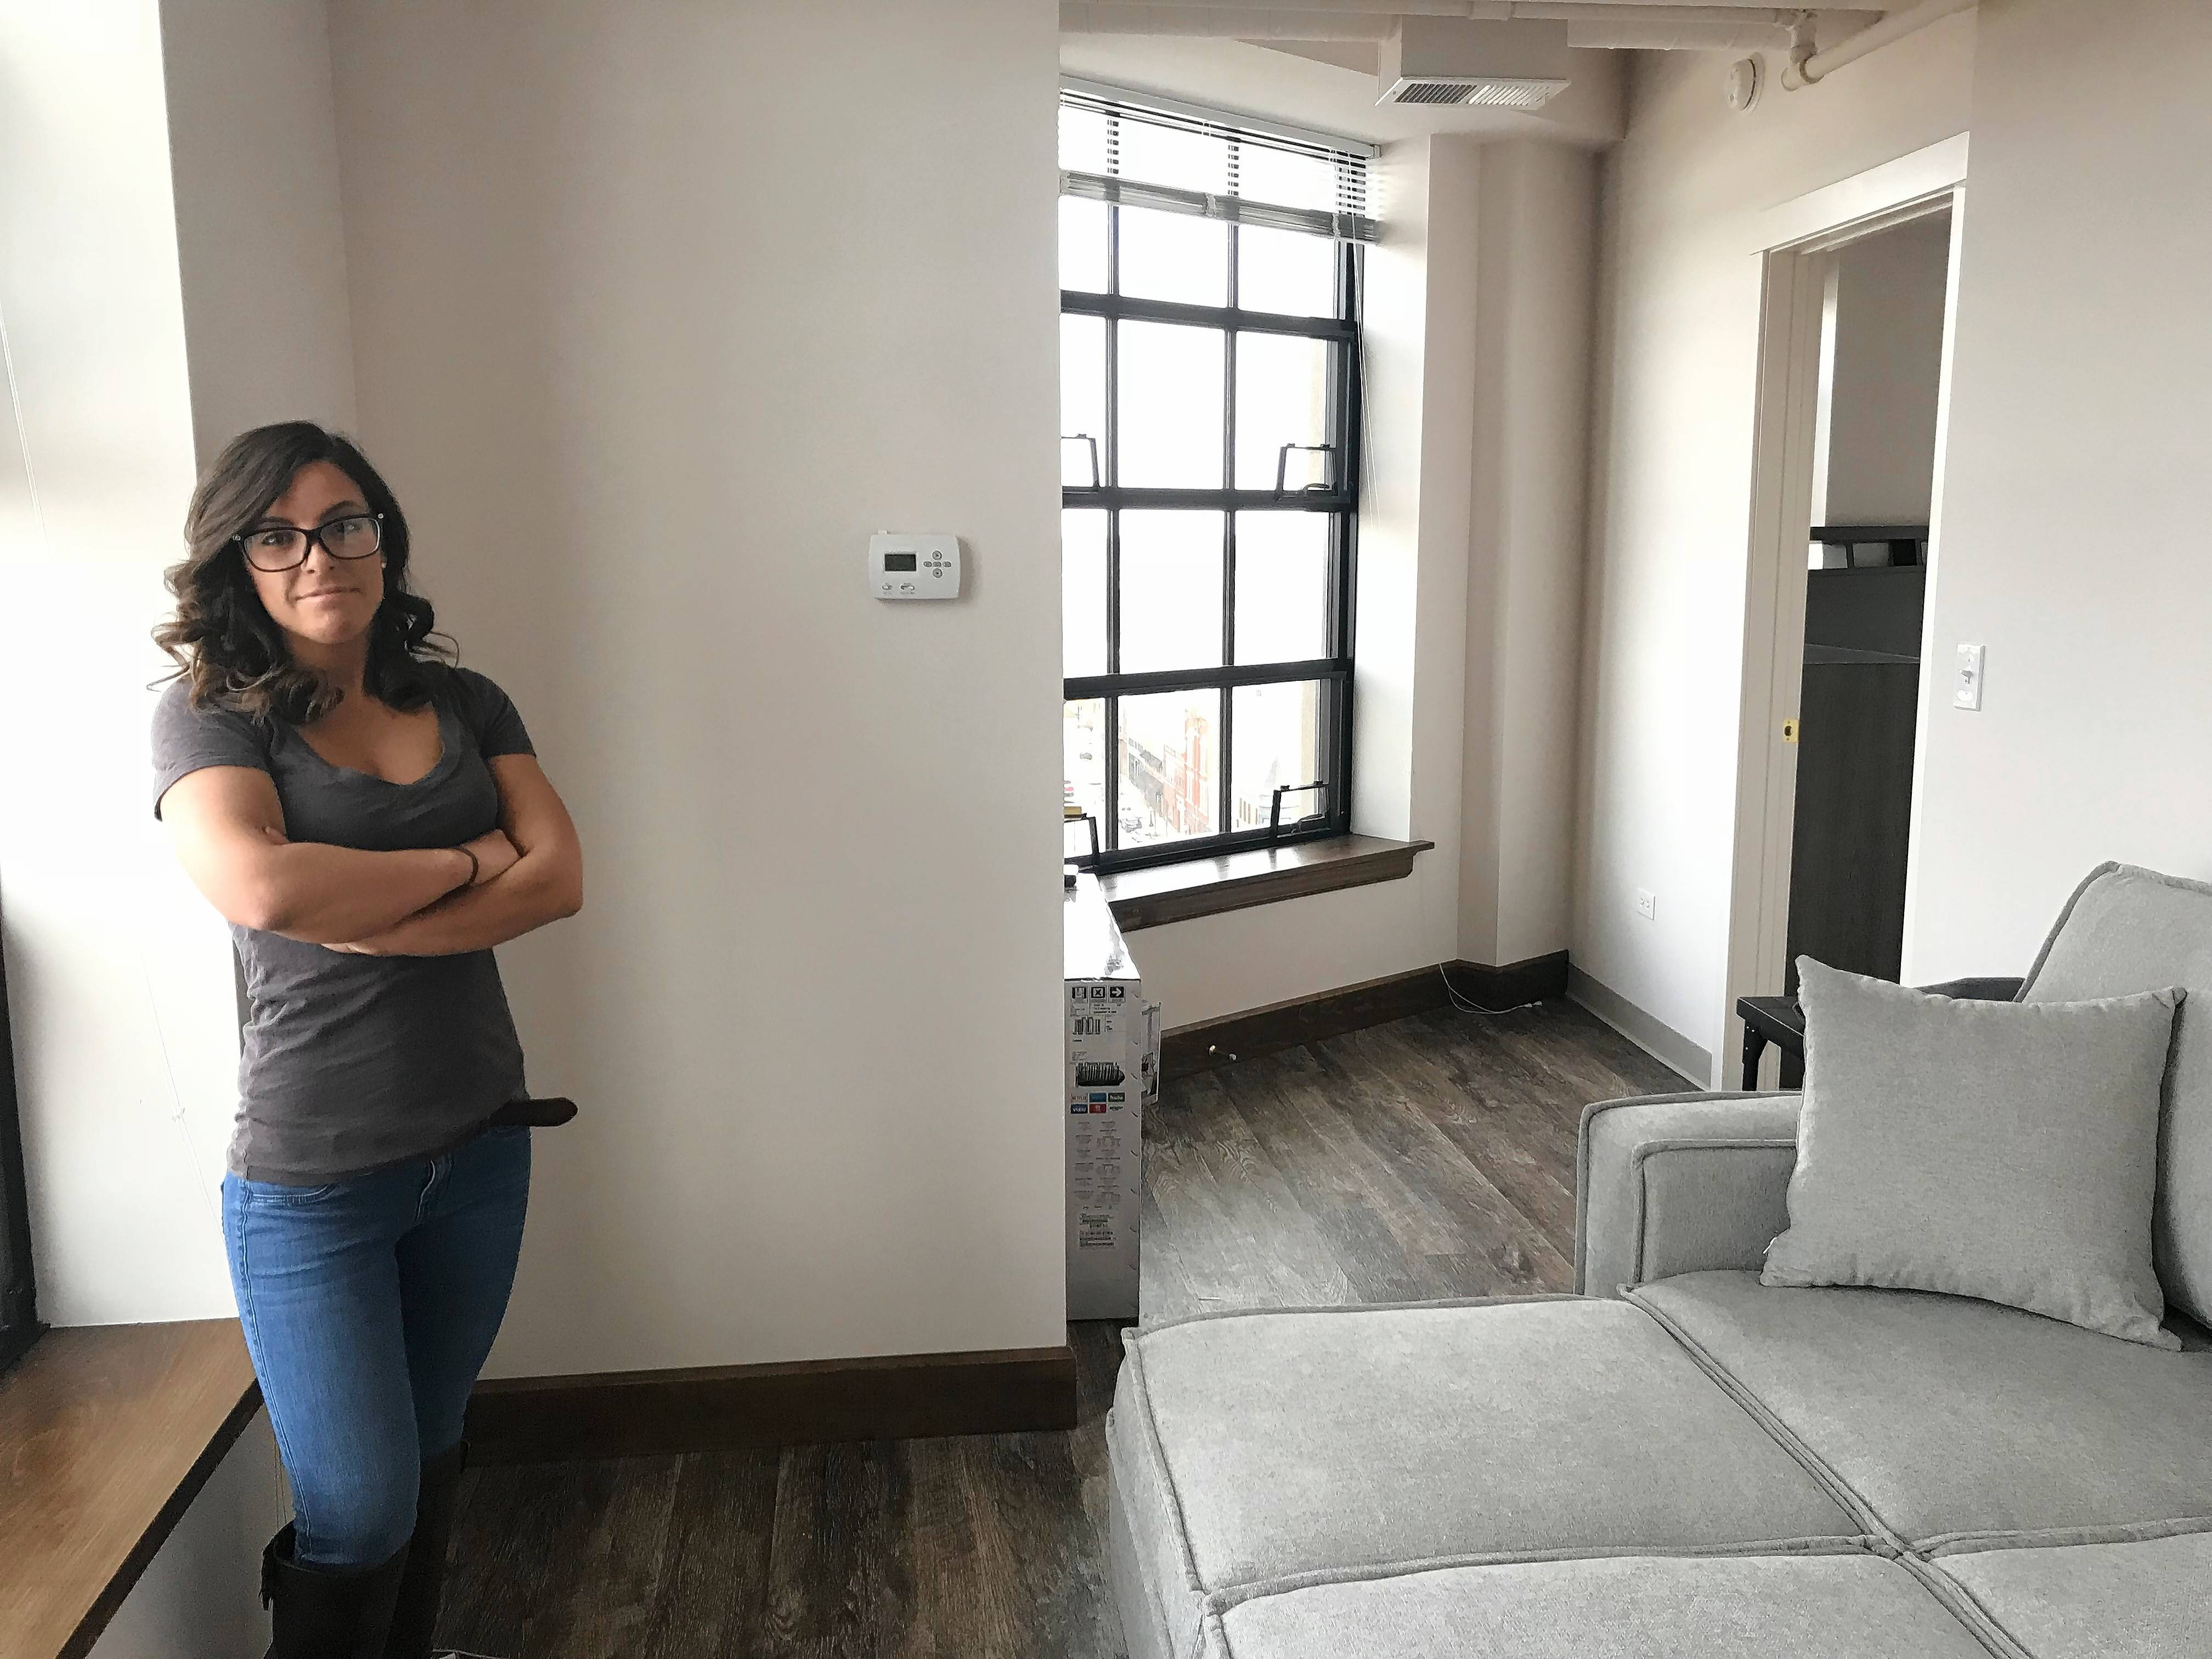 Nicole Dosek of Shorewood said she fell in love with the Elgin Tower Building when she visited it earlier this month. She was the first tenant to move in last Friday.